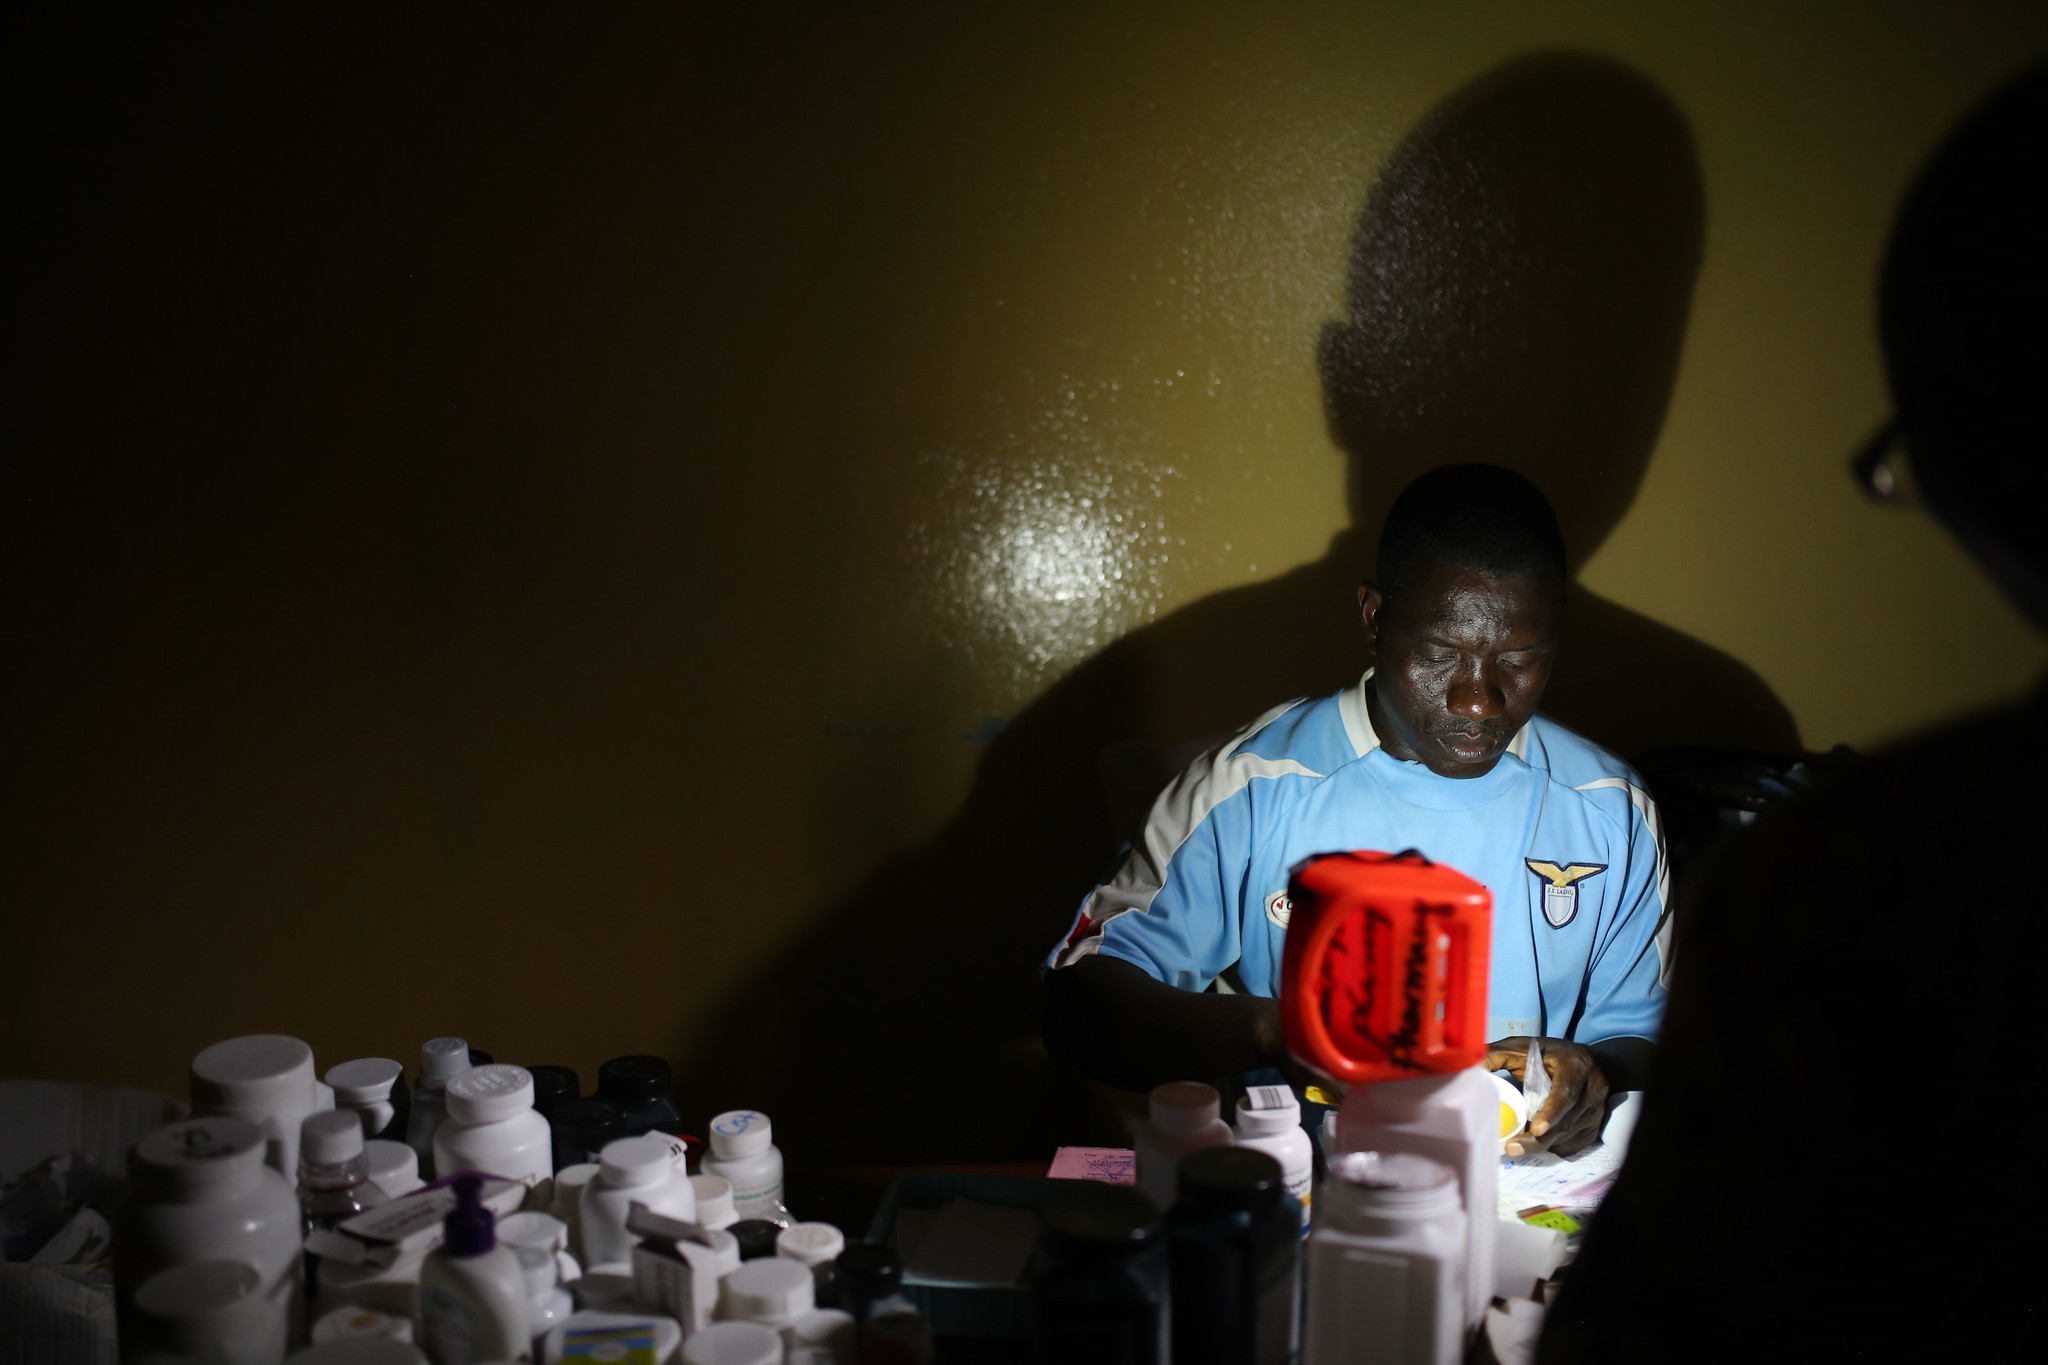 <p>A pharmacist works by flashlight at a hospital in Liberia. Photo by Dominic Chavez/World Bank.</p>